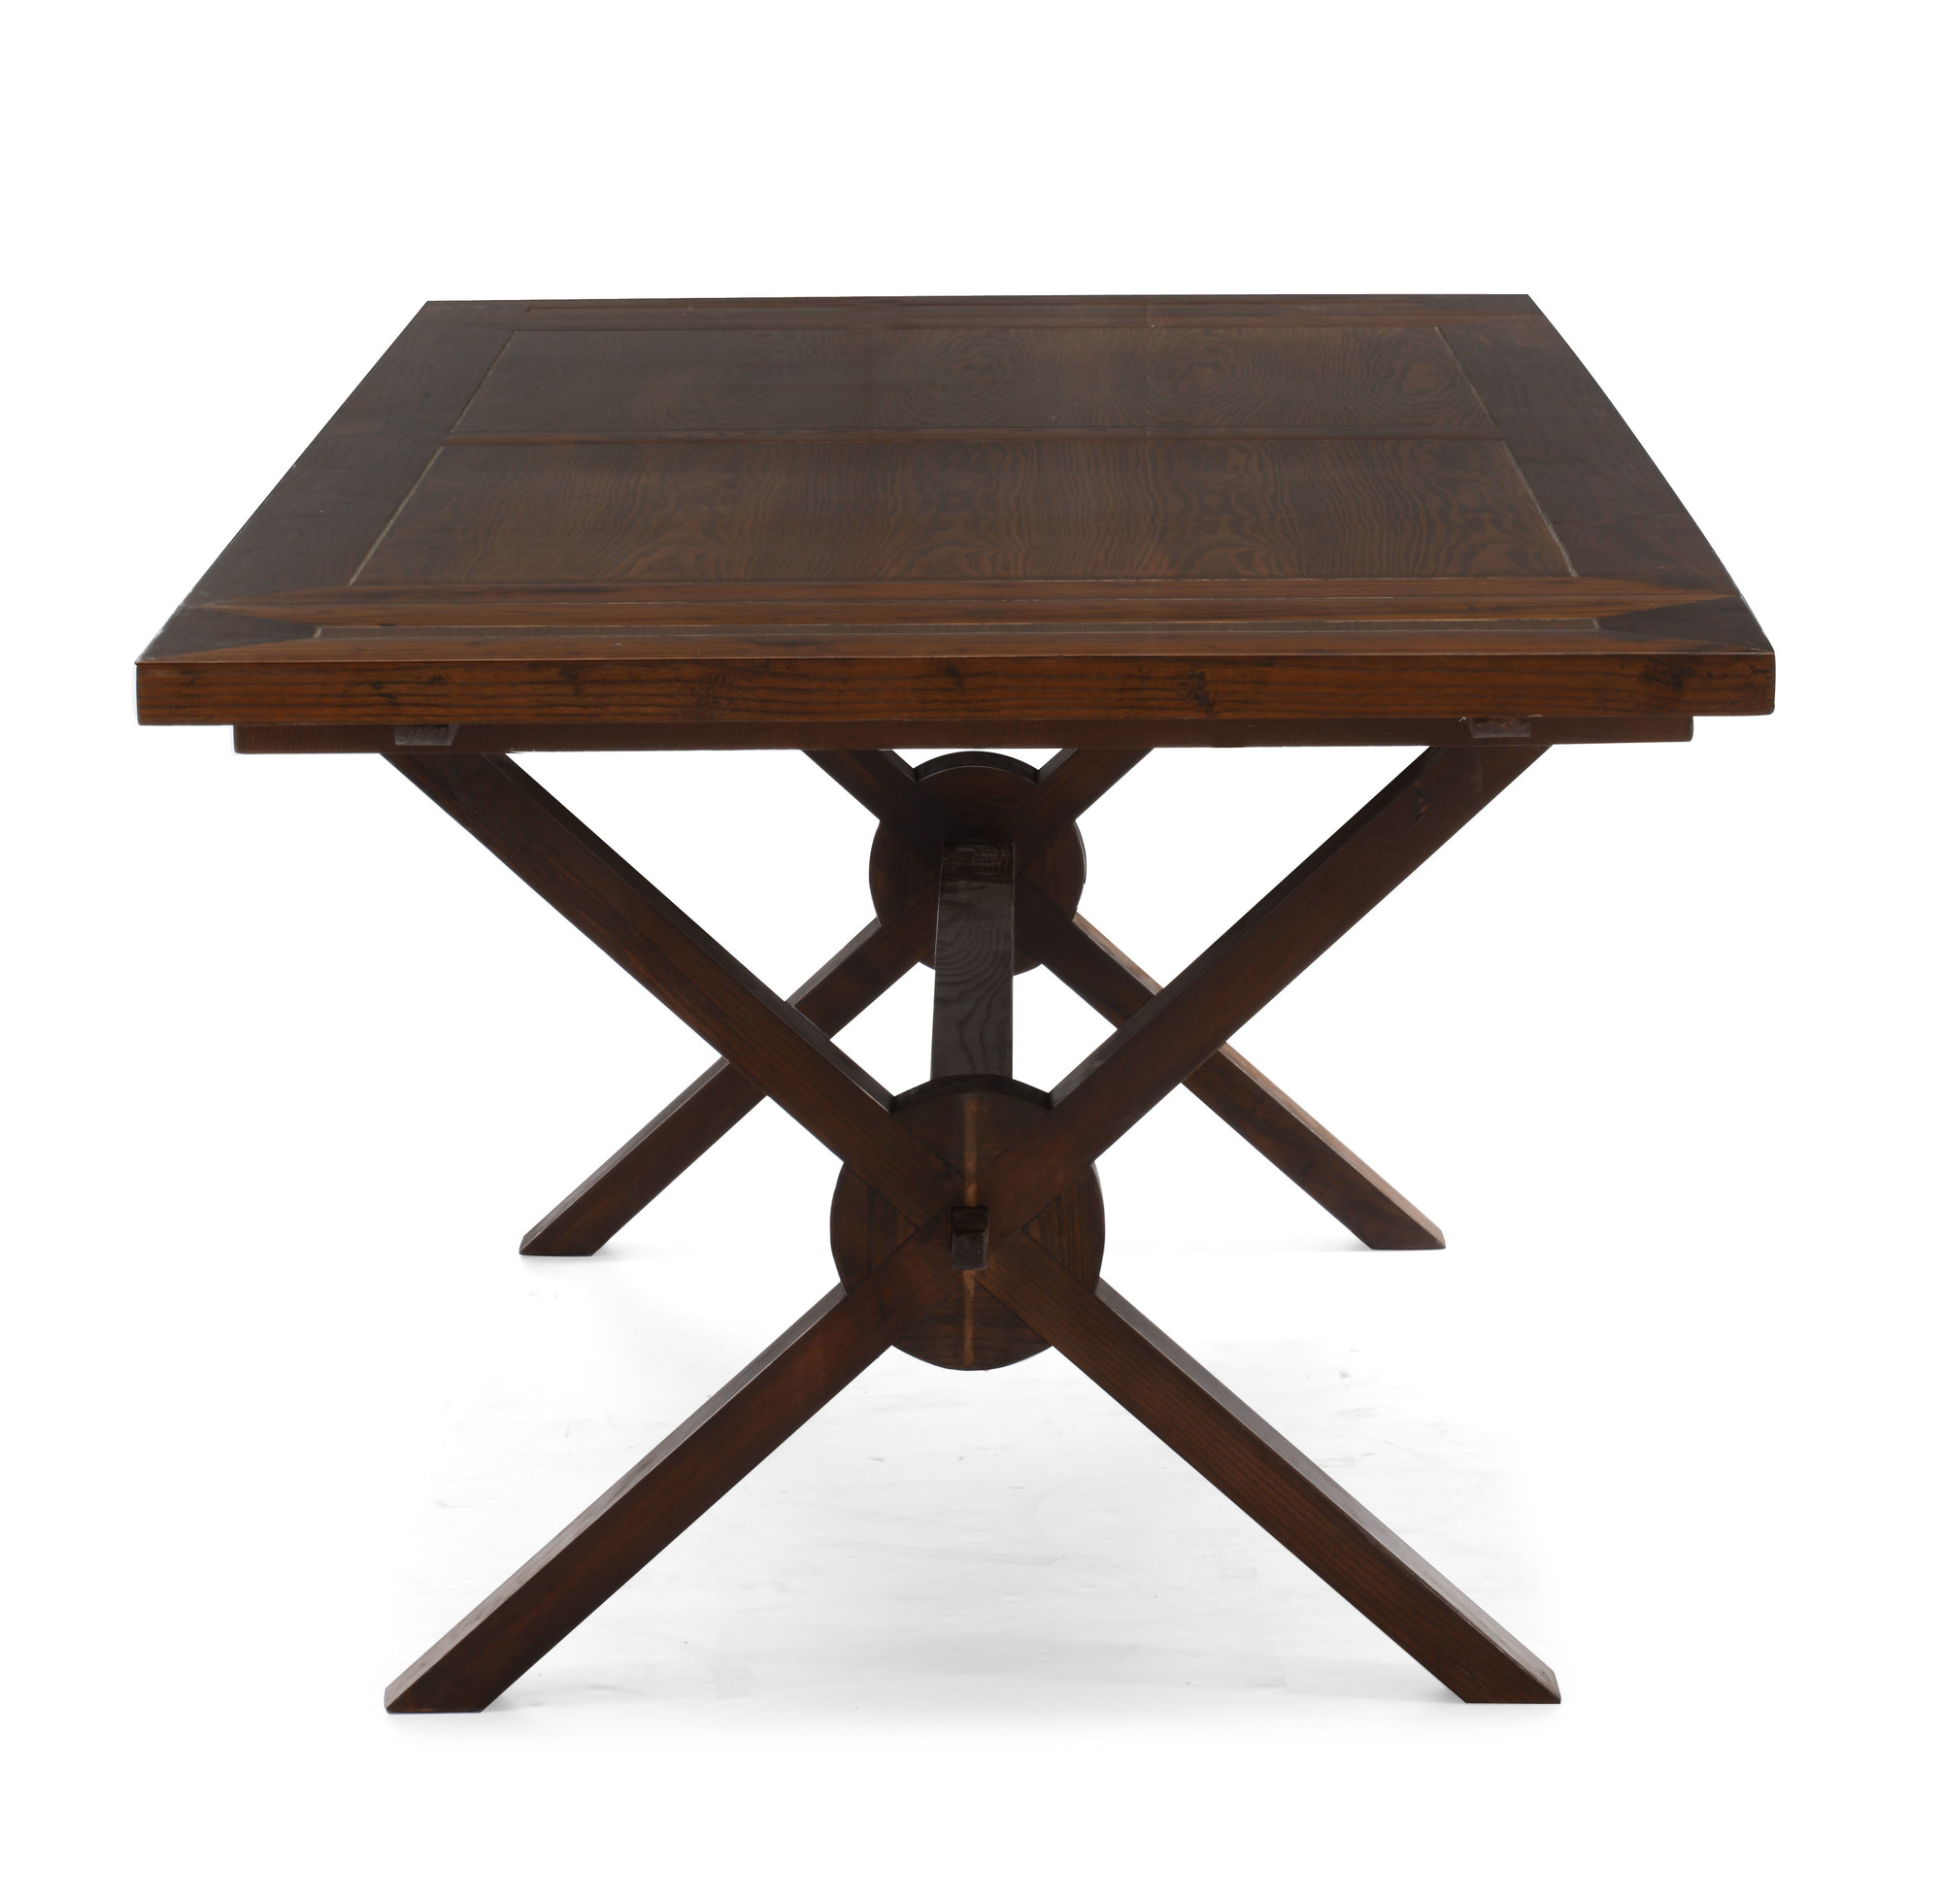 laurel-heights-table-by-zuo.jpg